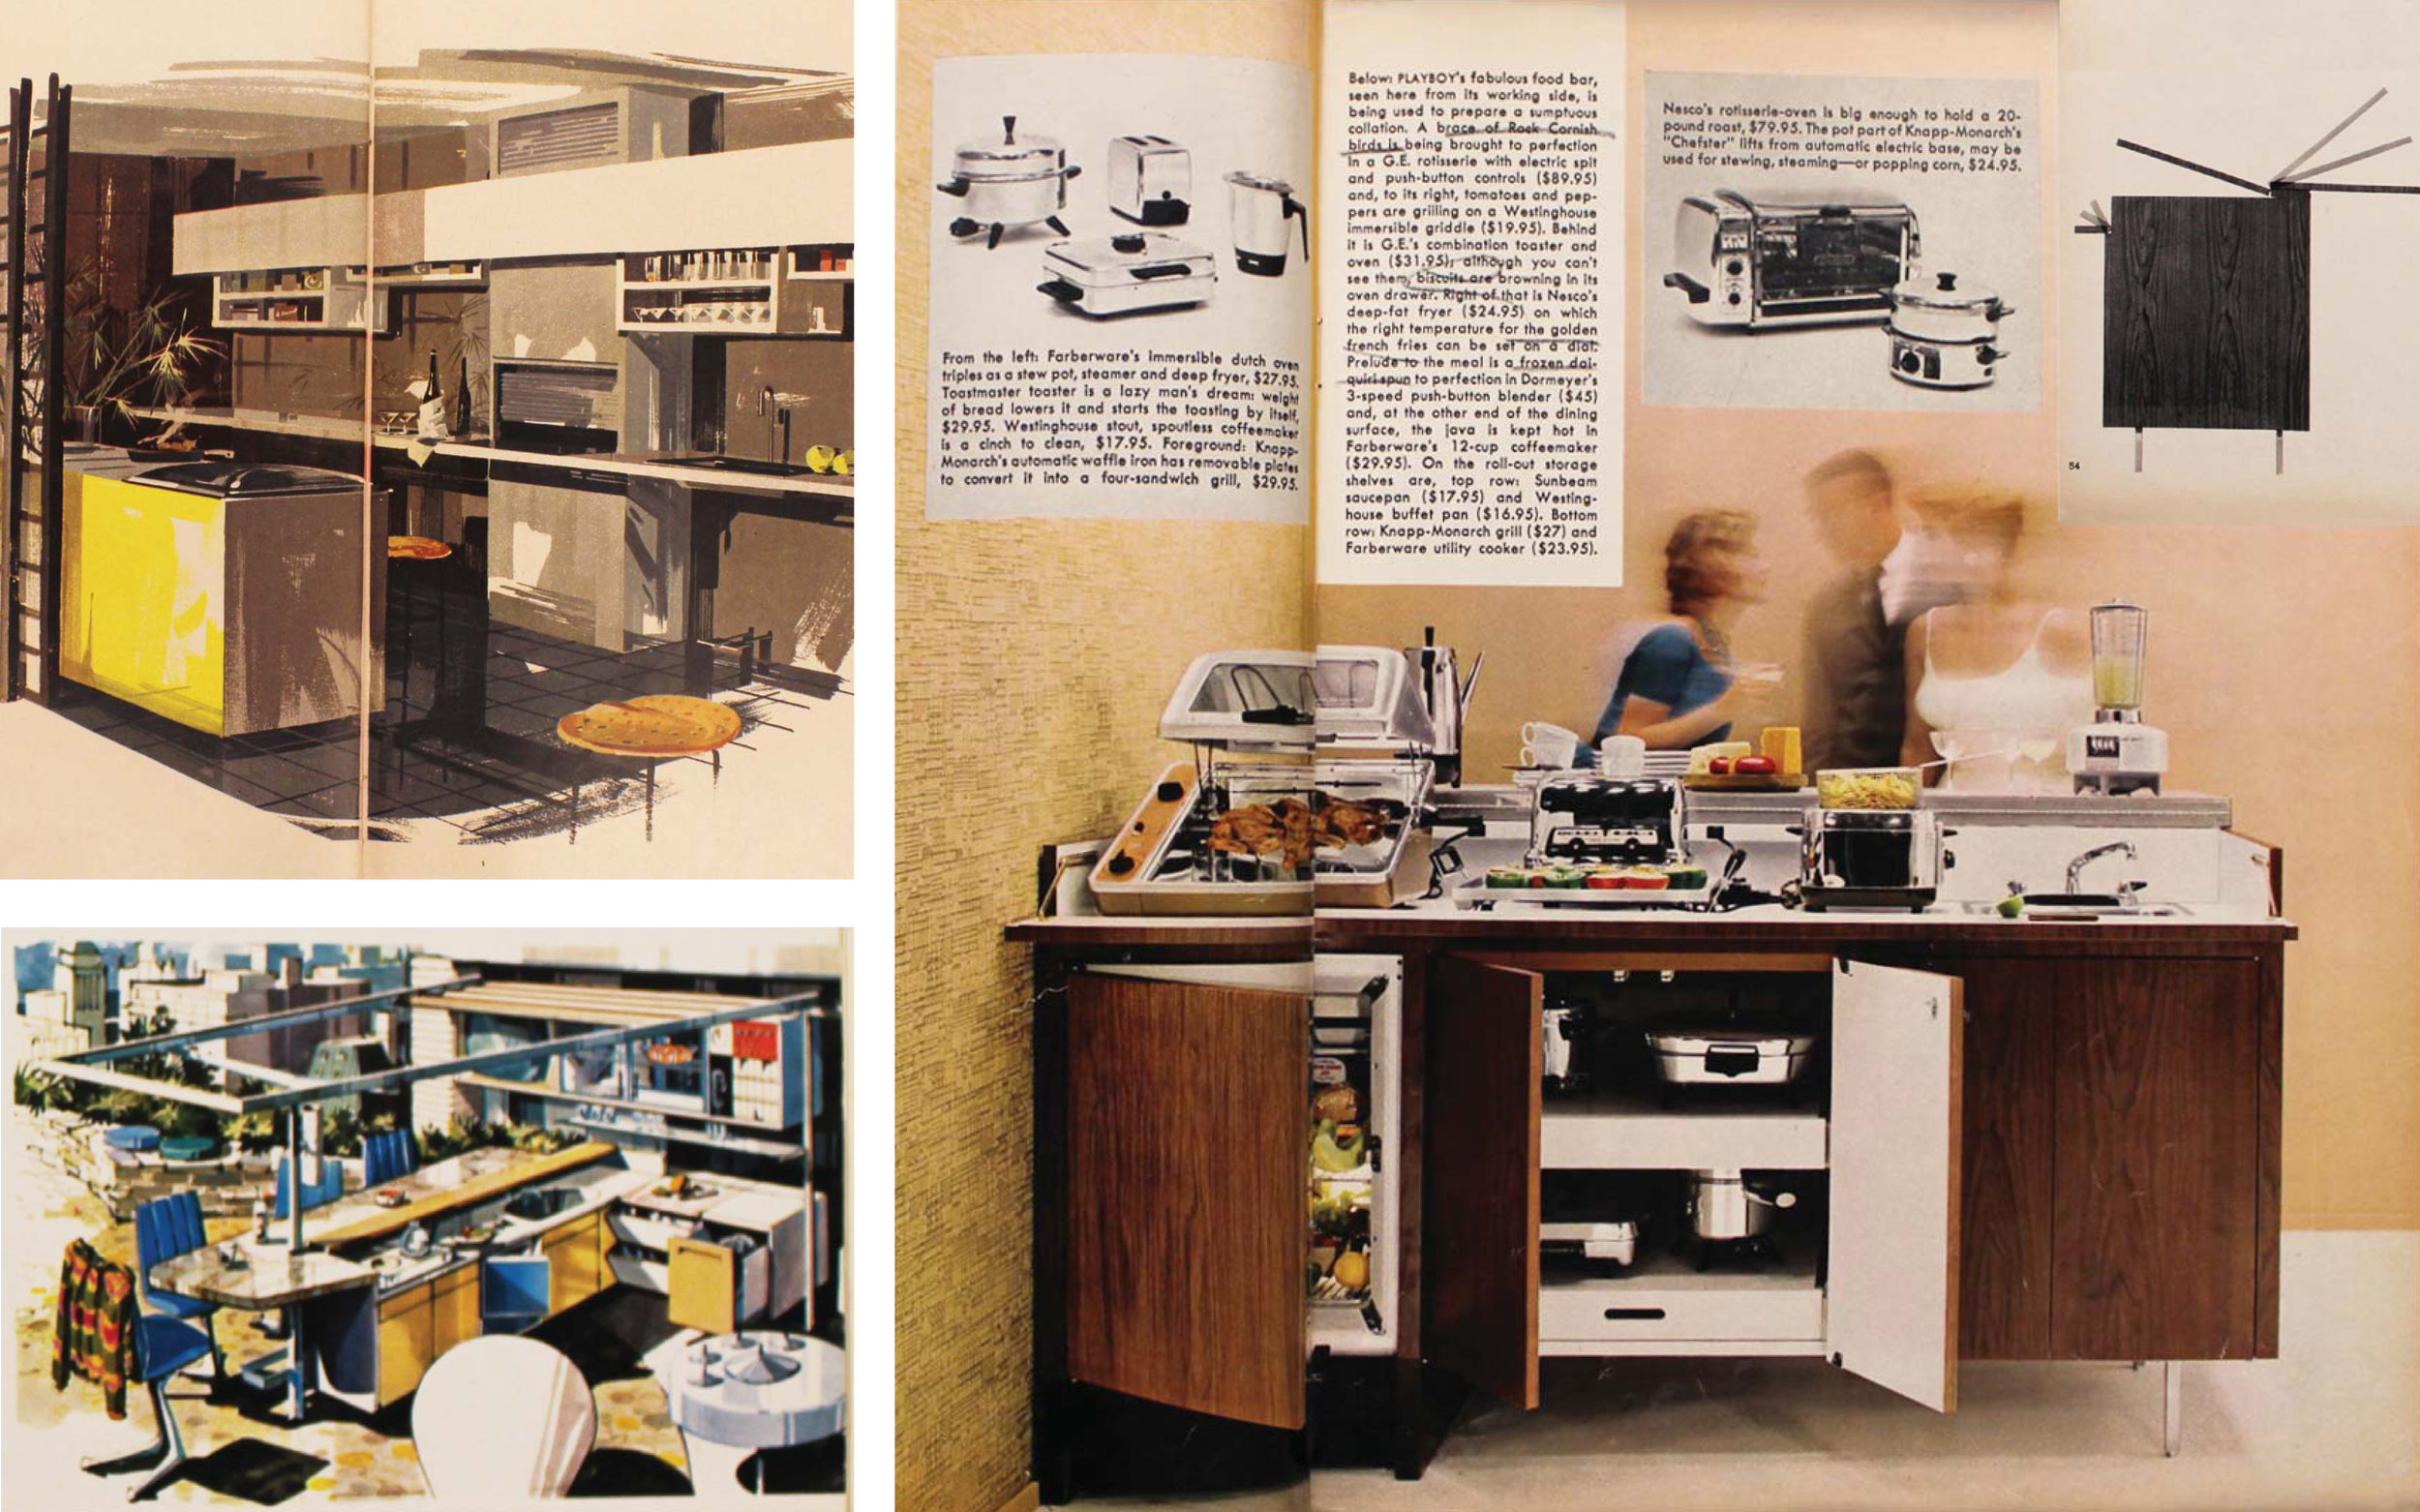 Figure 2:  Suggested kitchen replacements, a la  Playboy;  clockwise from top left:  The Playboy Penthouse, September 1956; The Kitchenless Kitchen, October 1959; The Playboy Patio Terrace, August 1963.     Playboy 's crusade against the kitchen takes place in kitchen replacements. Depicted here are a few versions of kitchen transformations which, over time, remove all recognizable nuclear concepts of the kitchen. The first iteration features a hidden kitchen, tucked neatly behind a shoji screen, with no allusion to the hygienic or practical functions of cookery. The Kitchenless Kitchen suggests the complete lack of cooking space made up for in performative, transformative counters and crevices made to fit new, specialized contraptions rather than conventional dowry-shrouded appliances. The bachelor enters in. Lastly, the suggestion of a non-kitchen kitchen appears on the playboy patio terrace, where all practical or necessary functions are removed and replaced by the purely performative and social.